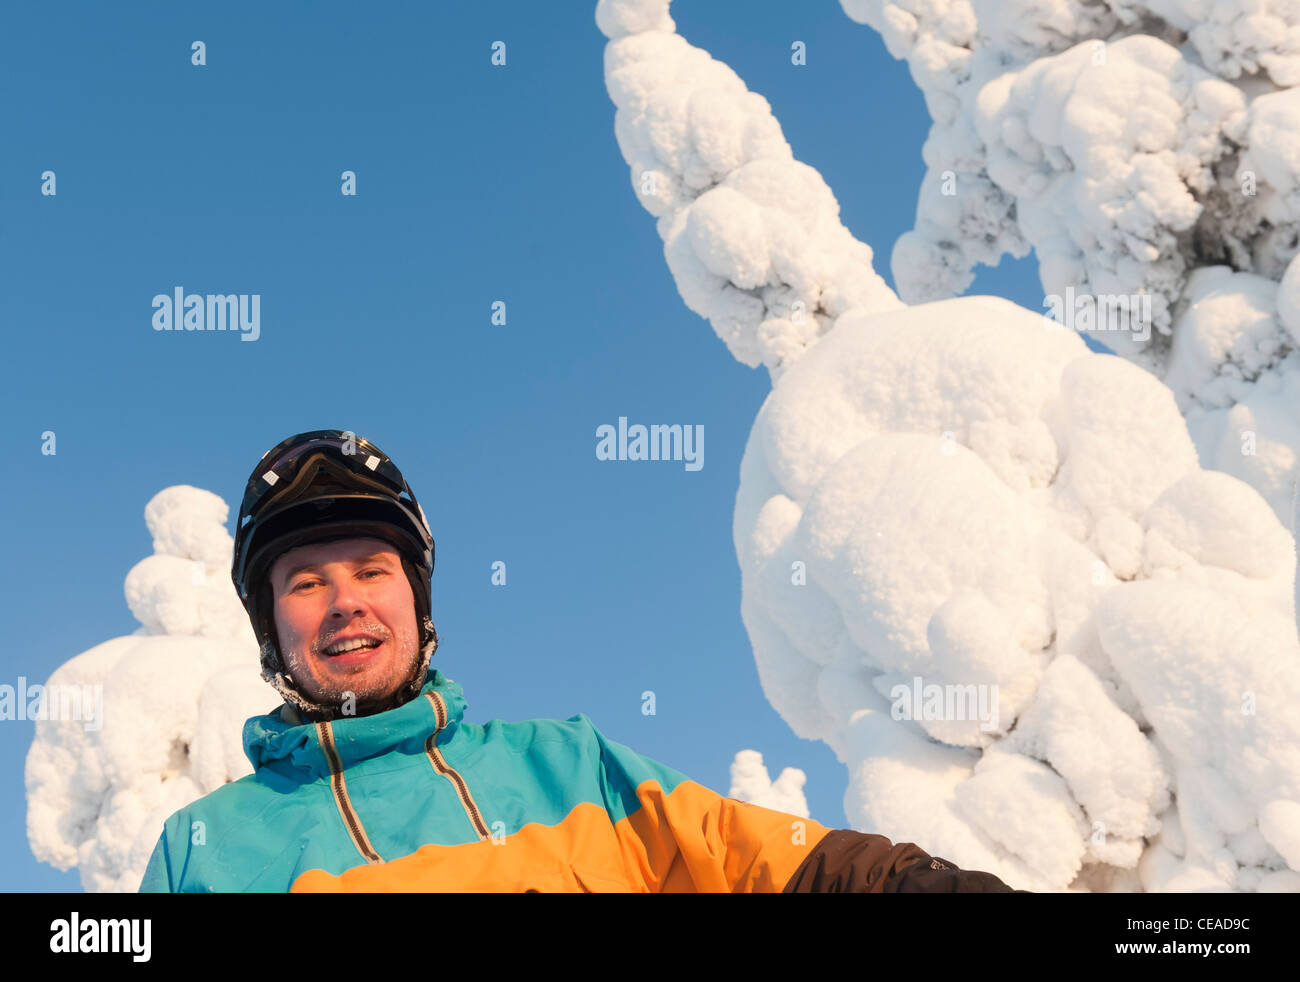 Portrait of a male skier among snow-clad trees in Isosyöte, Finland. - Stock Image